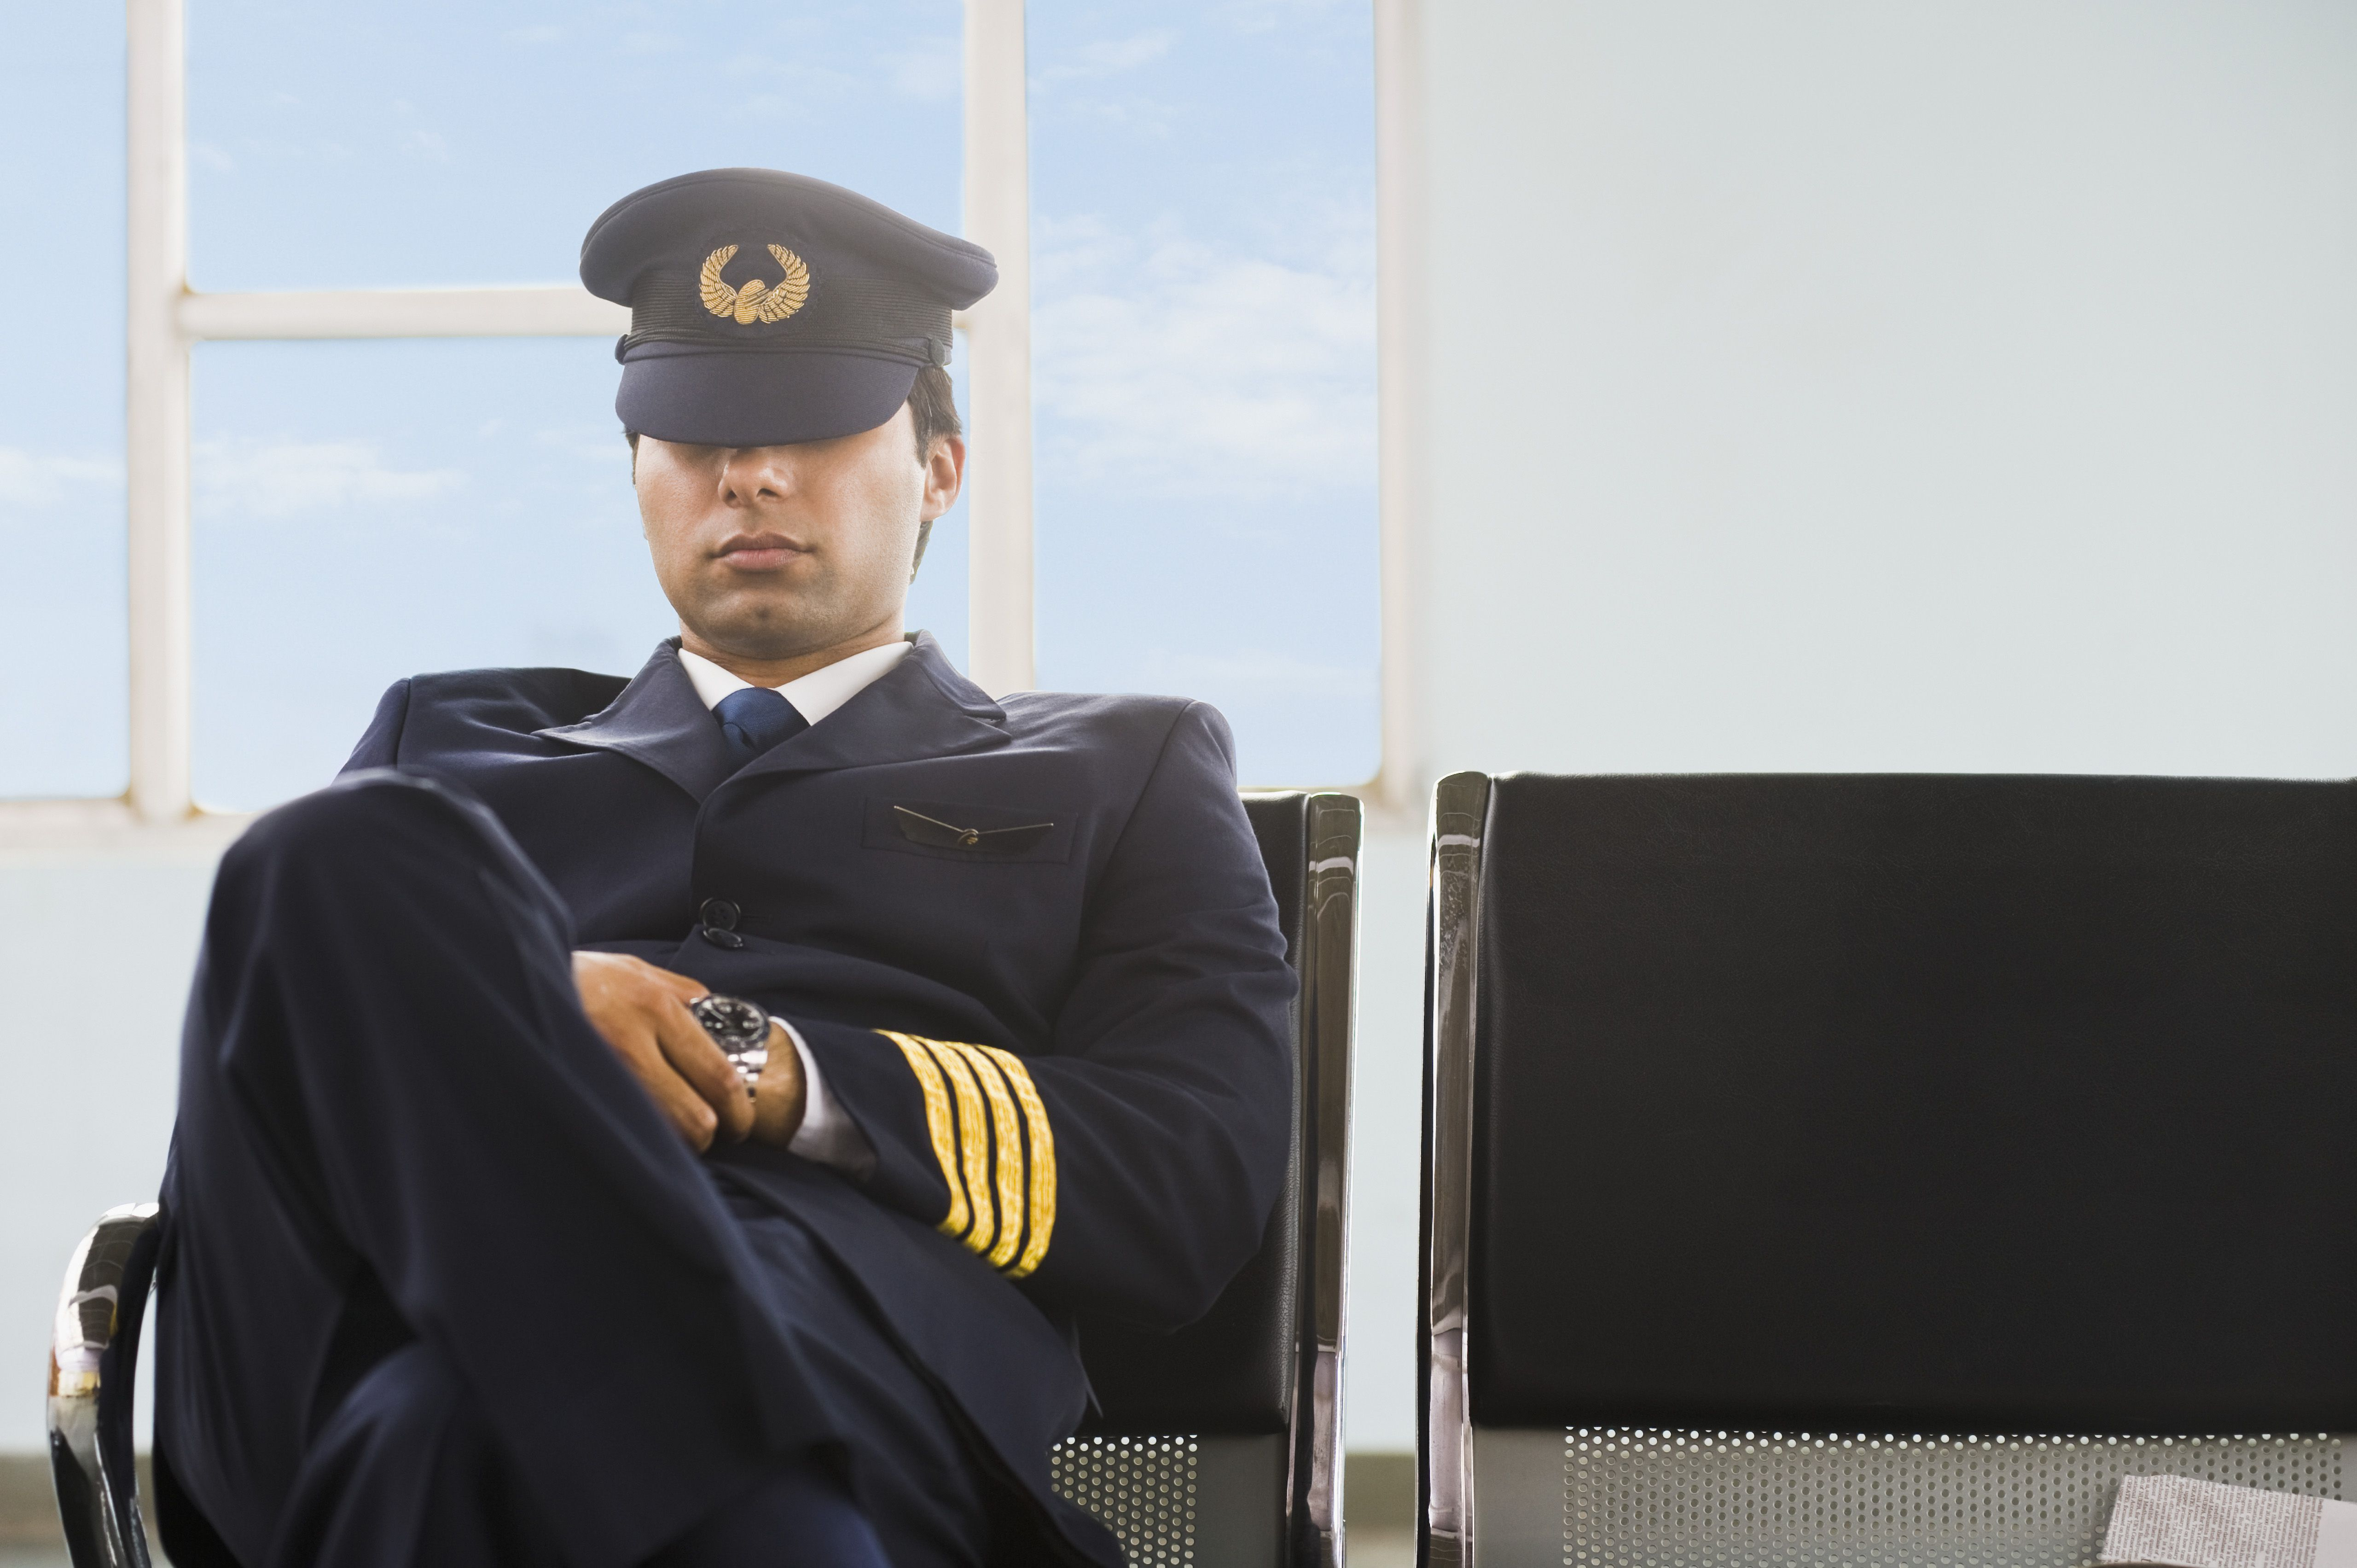 Pilot napping on the bench at an airport